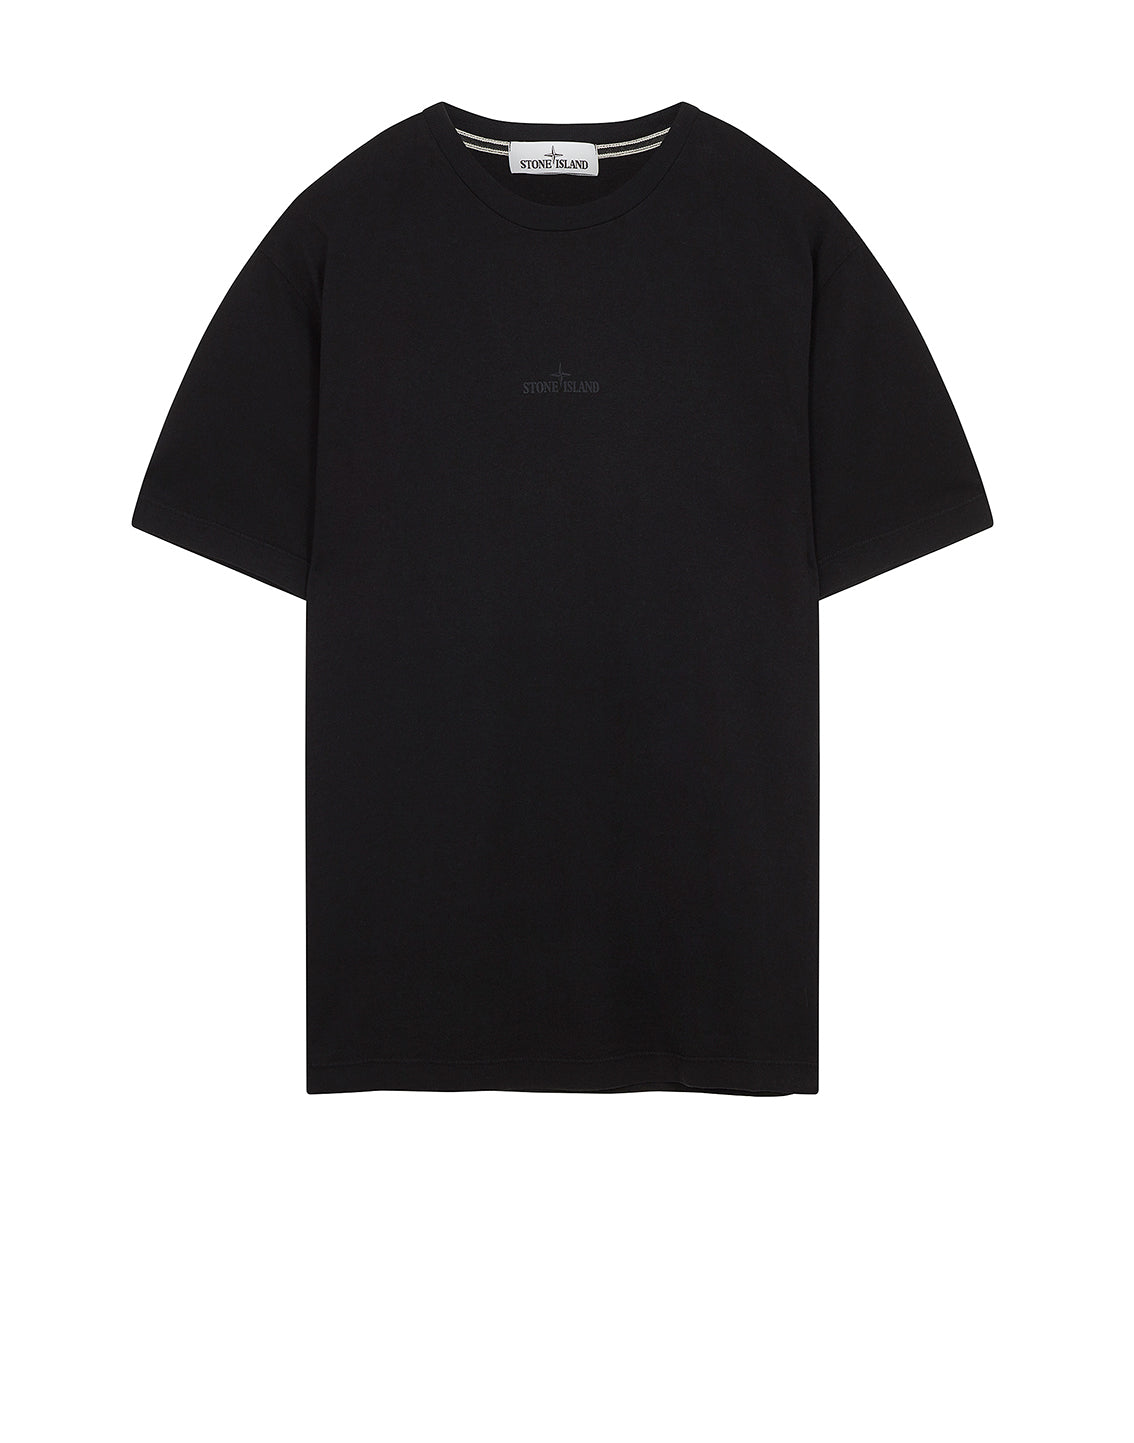 2NS89 GRAPHIC SEVEN T-Shirt in Black